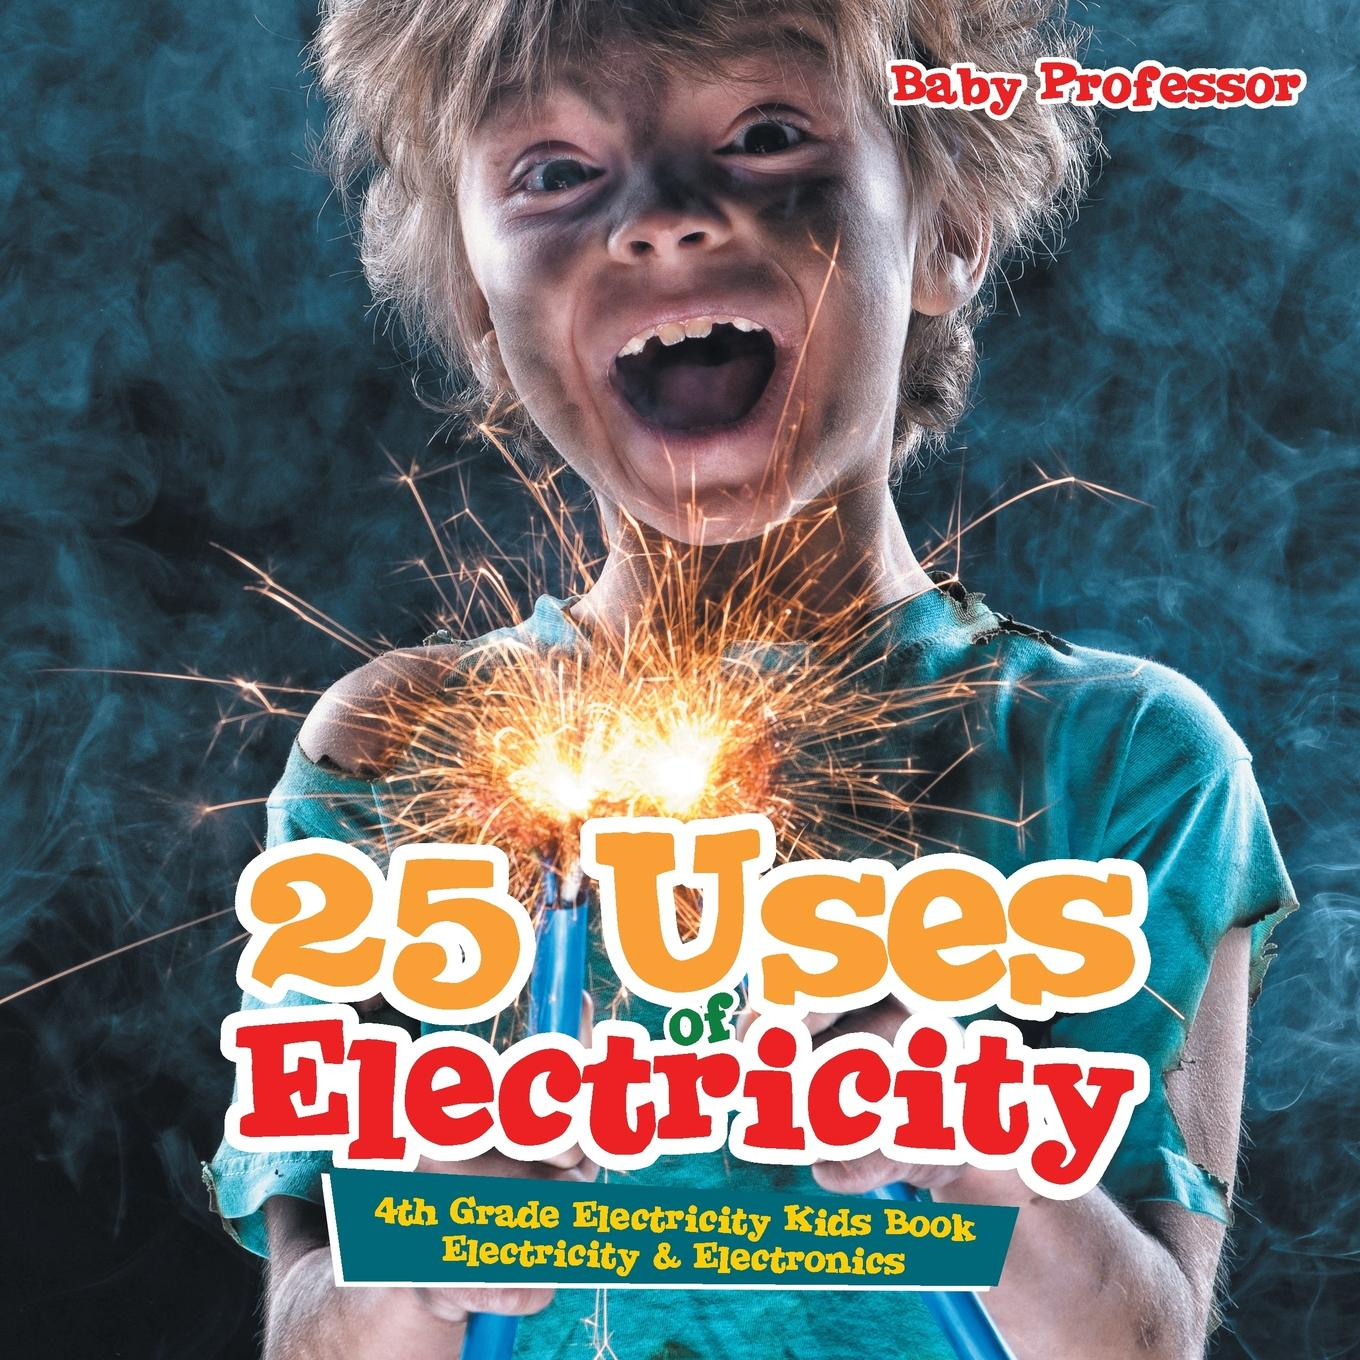 25 Uses of Electricity 4th Grade Electricity Kids Book Electricity & Electronics